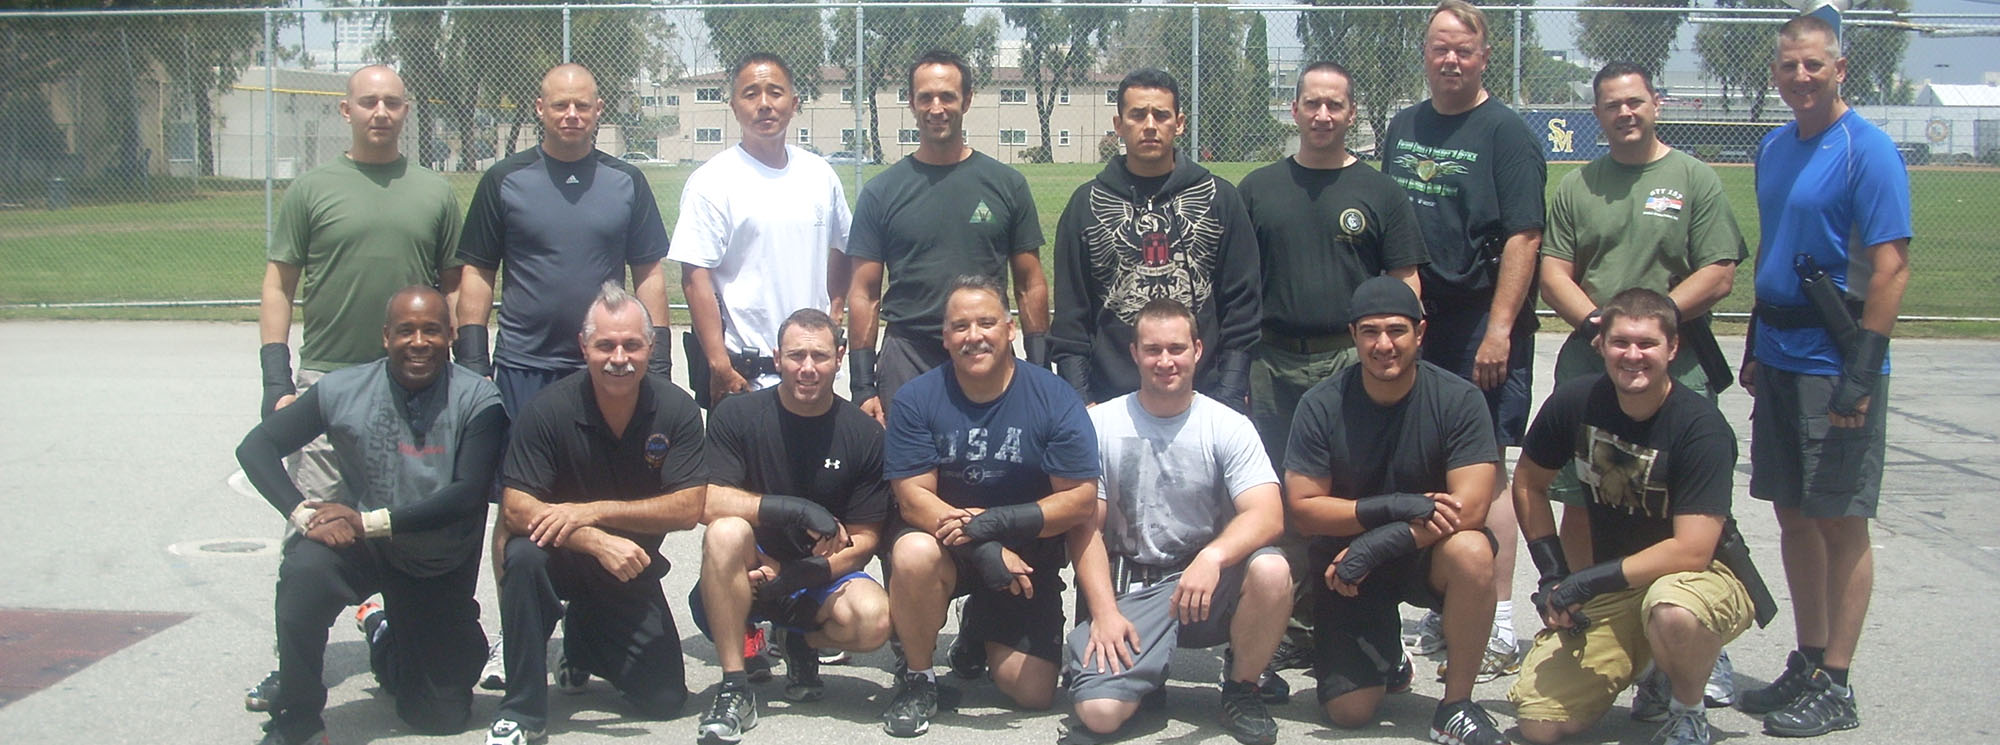 Defensive training group.